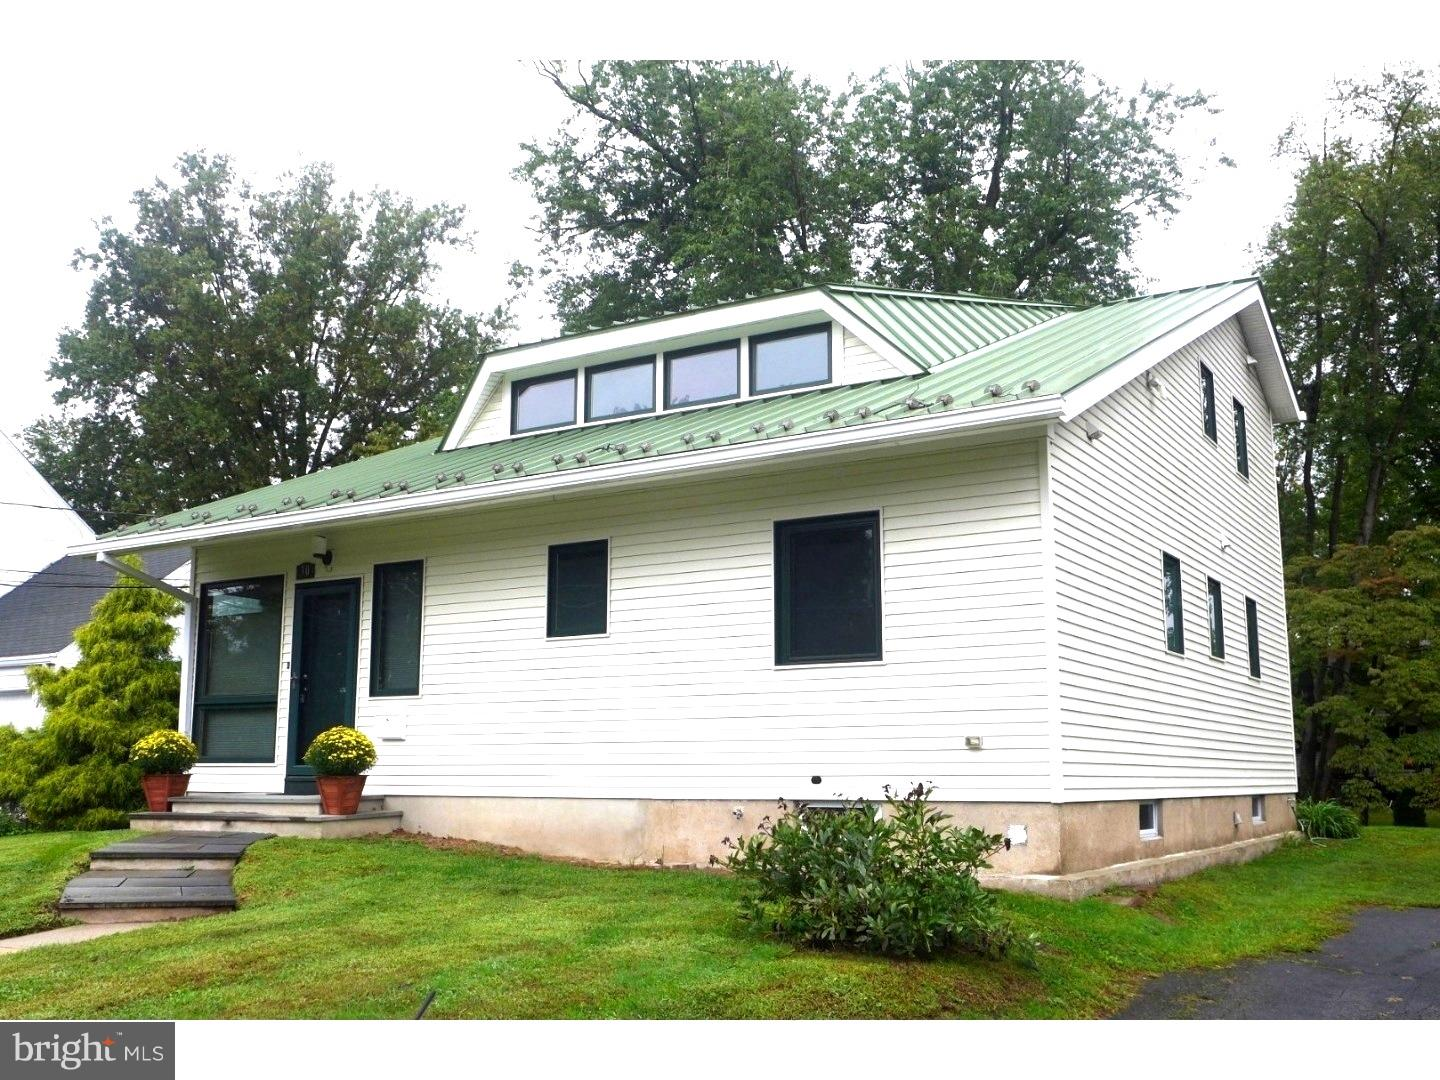 Property for Sale at 30 ERDMAN Avenue Princeton, New Jersey 08540 United States